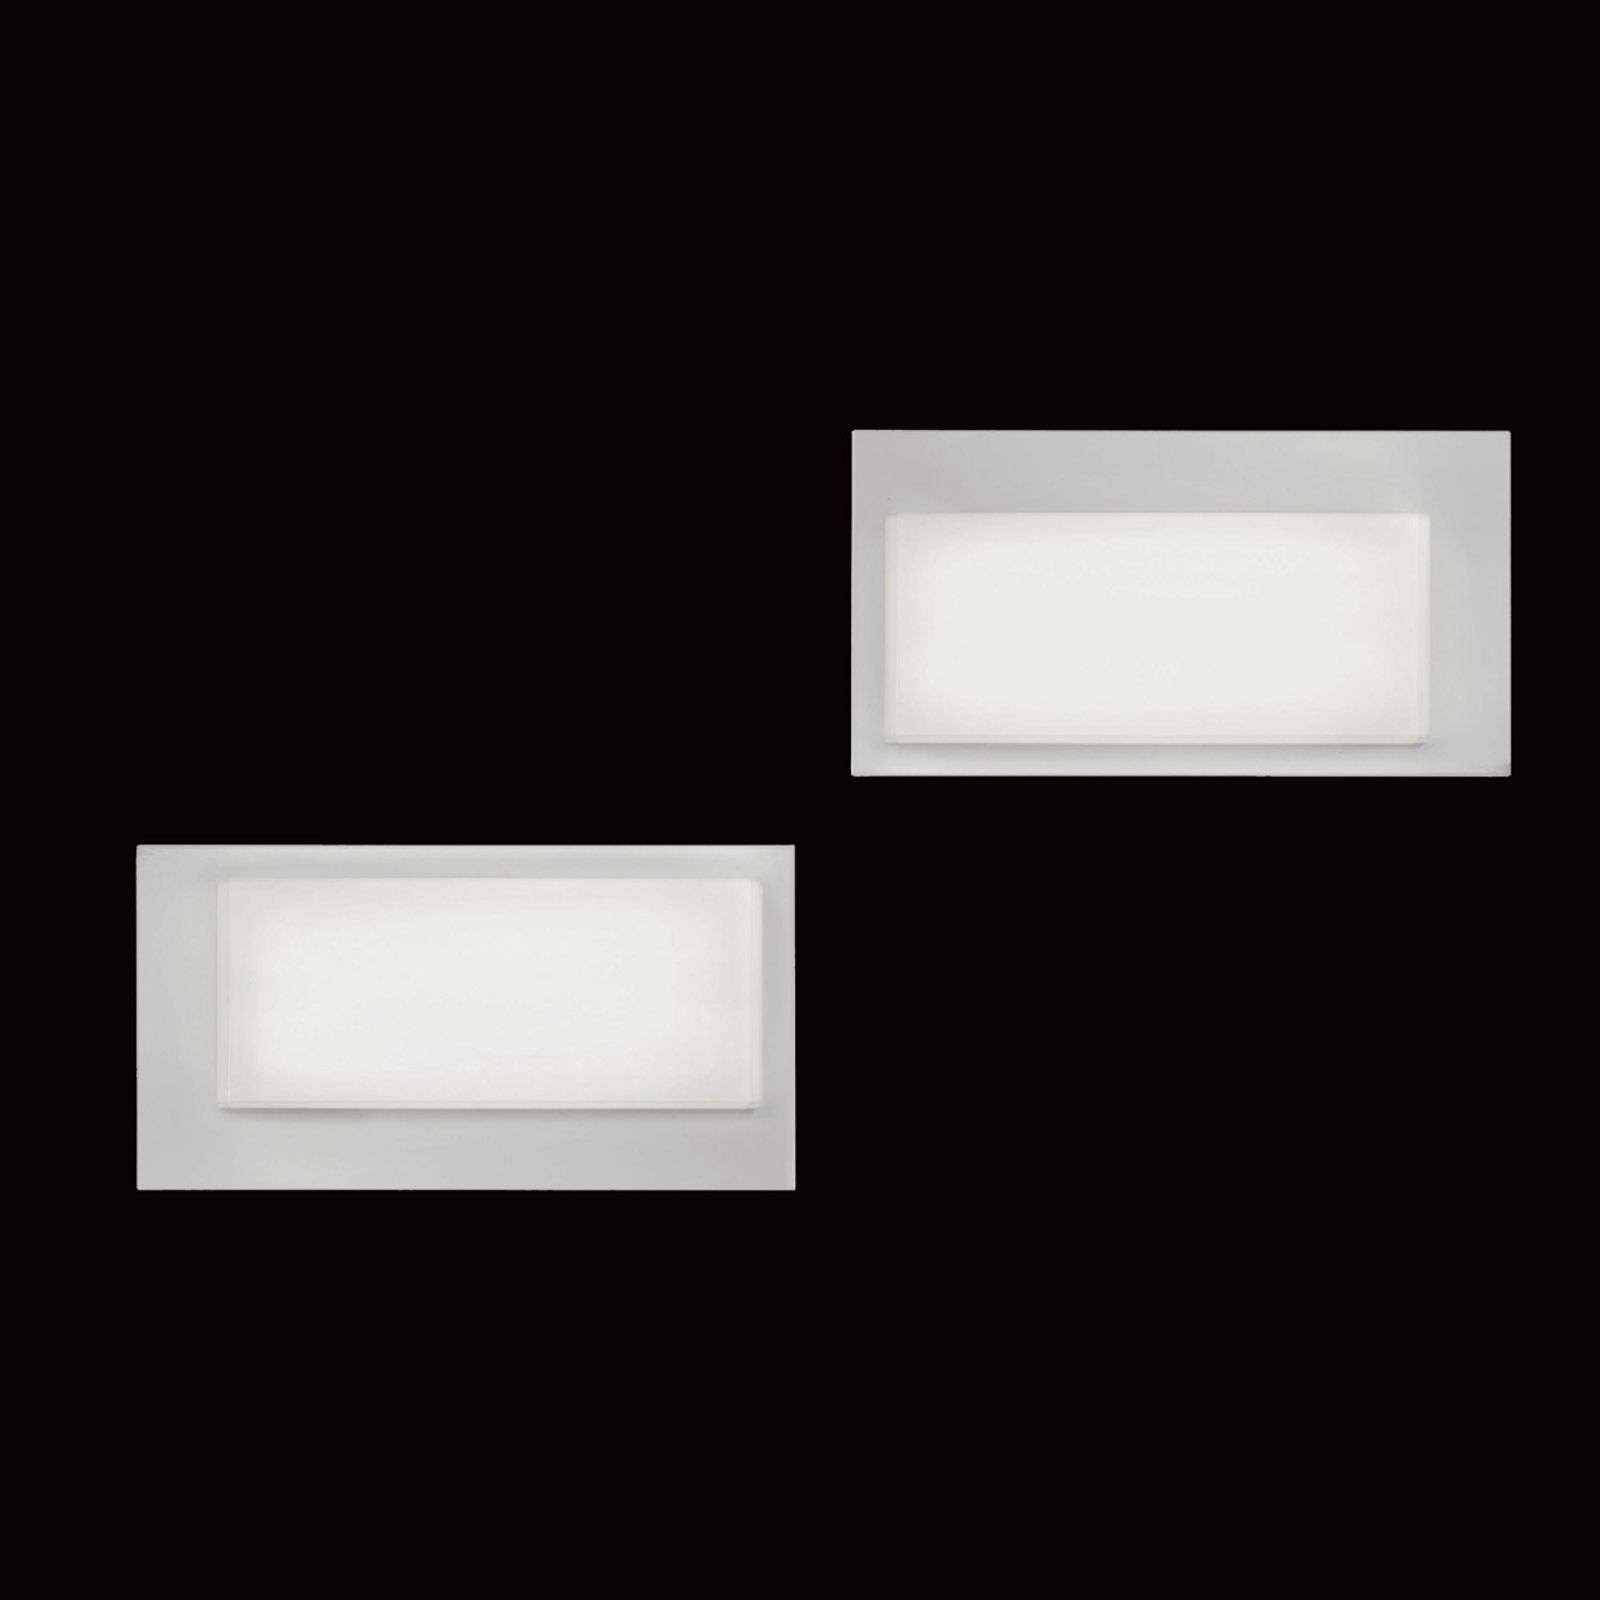 Applique LED LOGIC 4000 K blanc écarlate